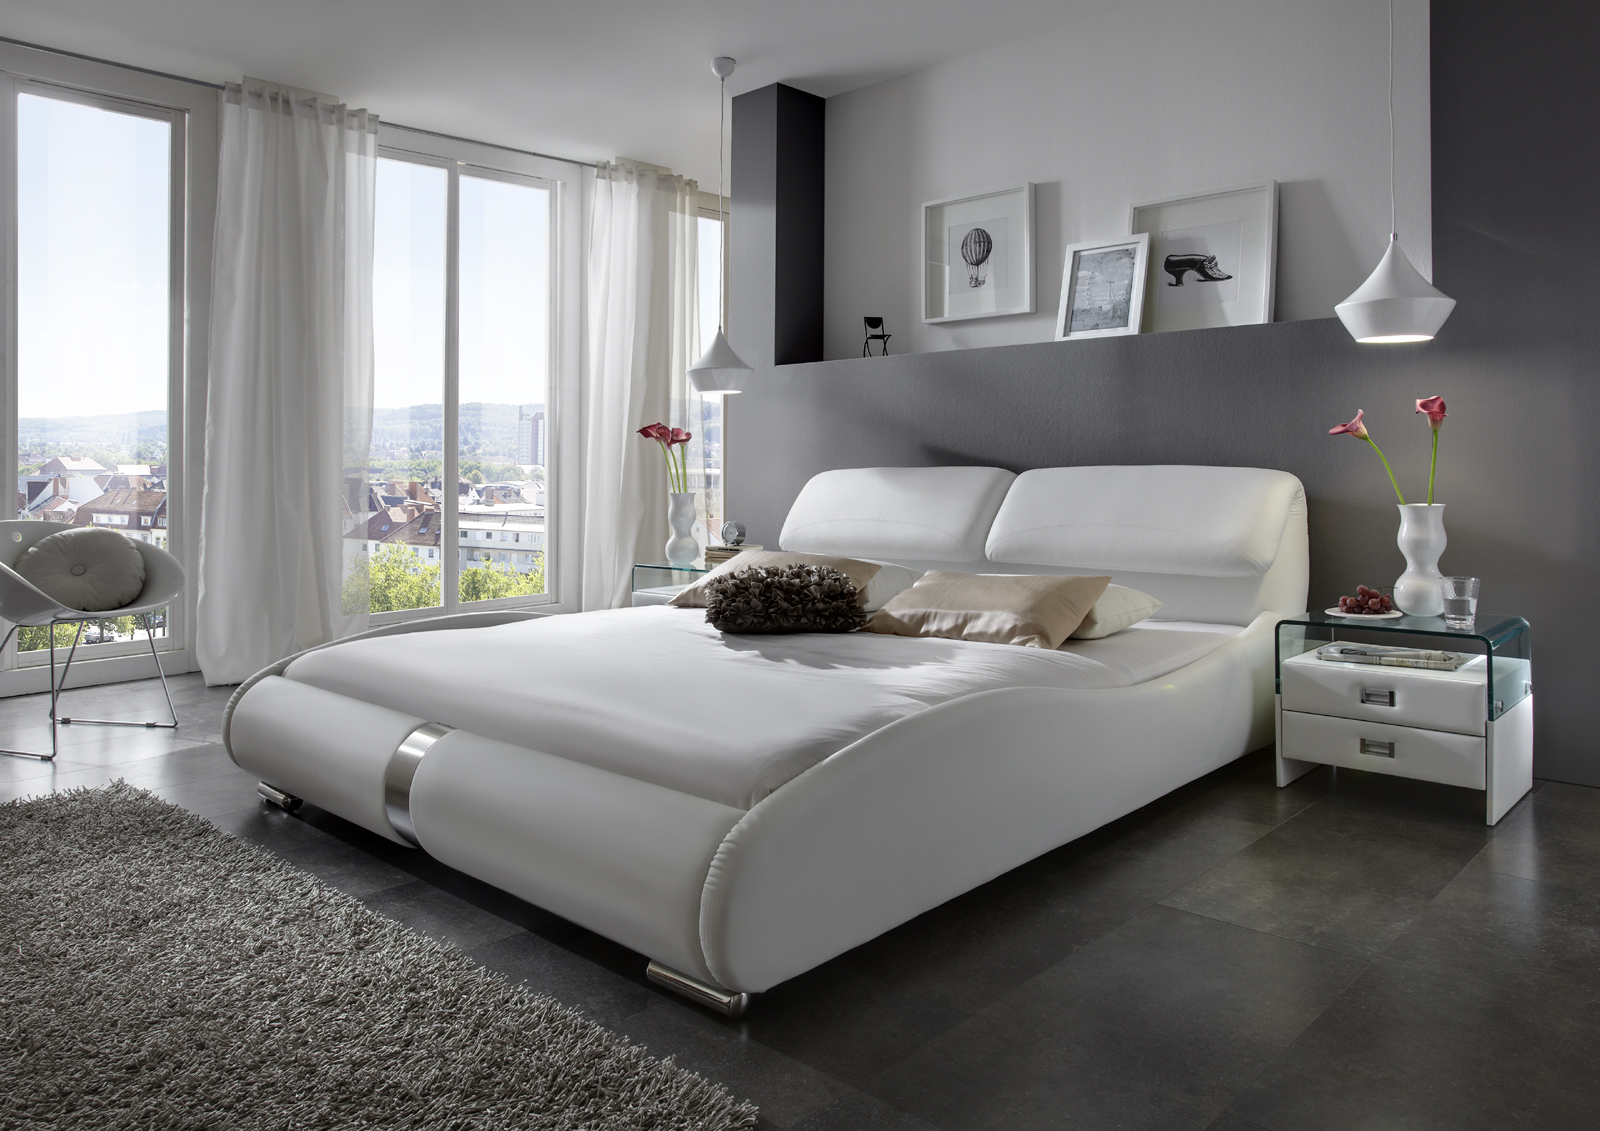 sam polsterbett 140 cm wei lucca auf lager. Black Bedroom Furniture Sets. Home Design Ideas